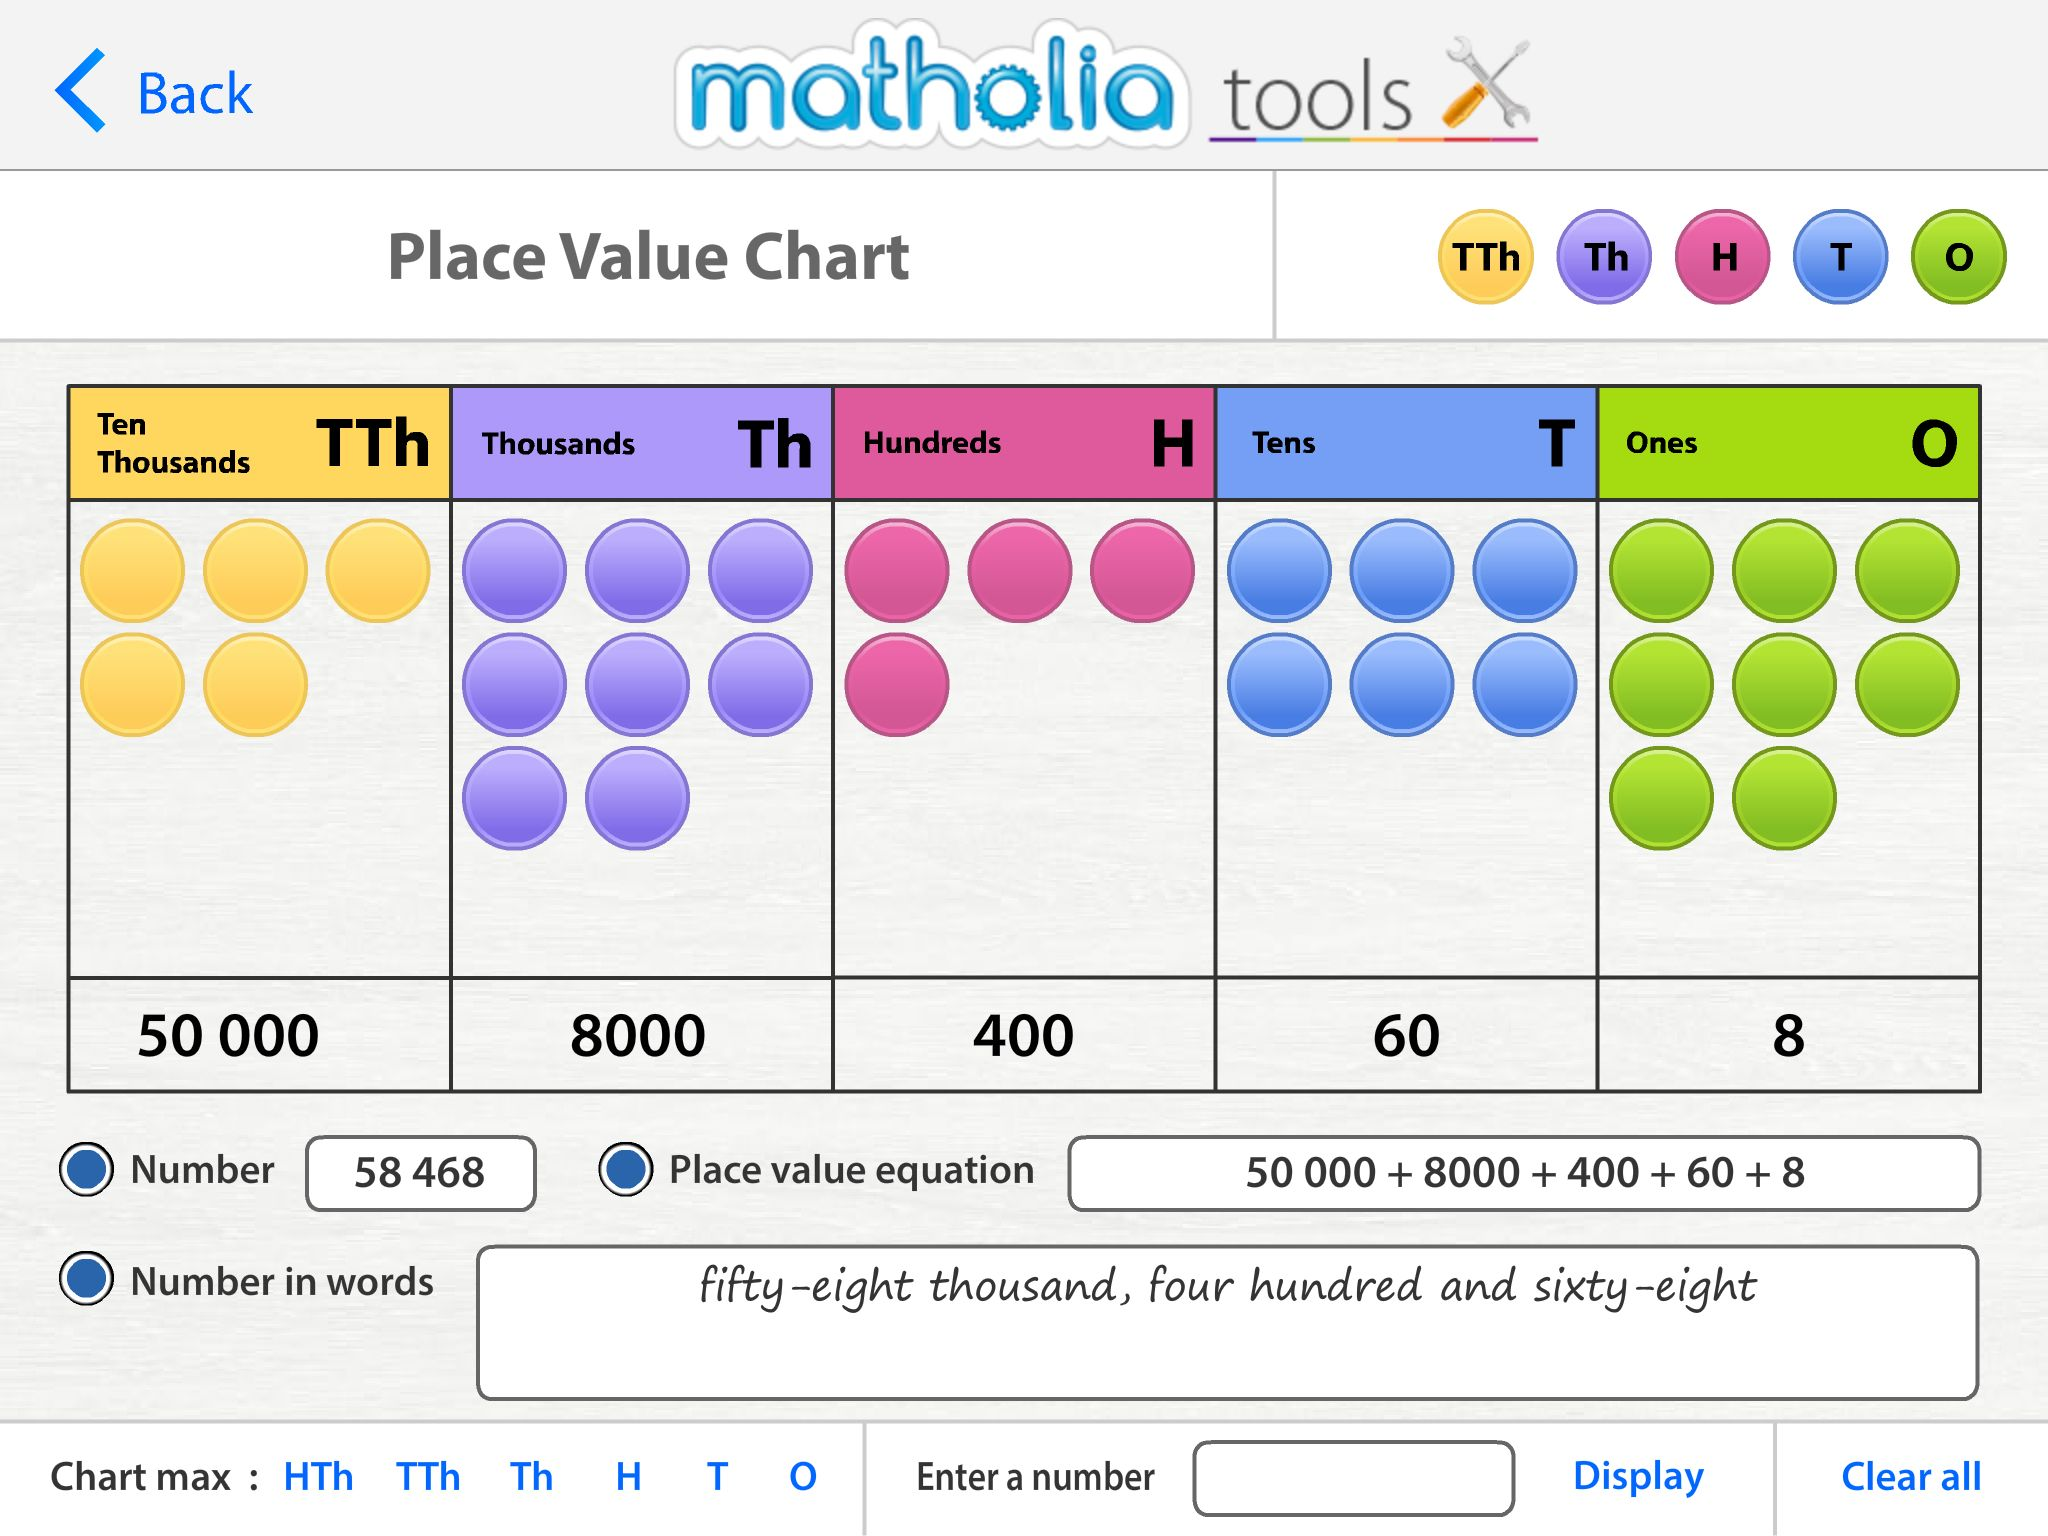 Matholia Tools Place Value Chart Place Value Chart Play To Learn Place Values Adding with place value chart